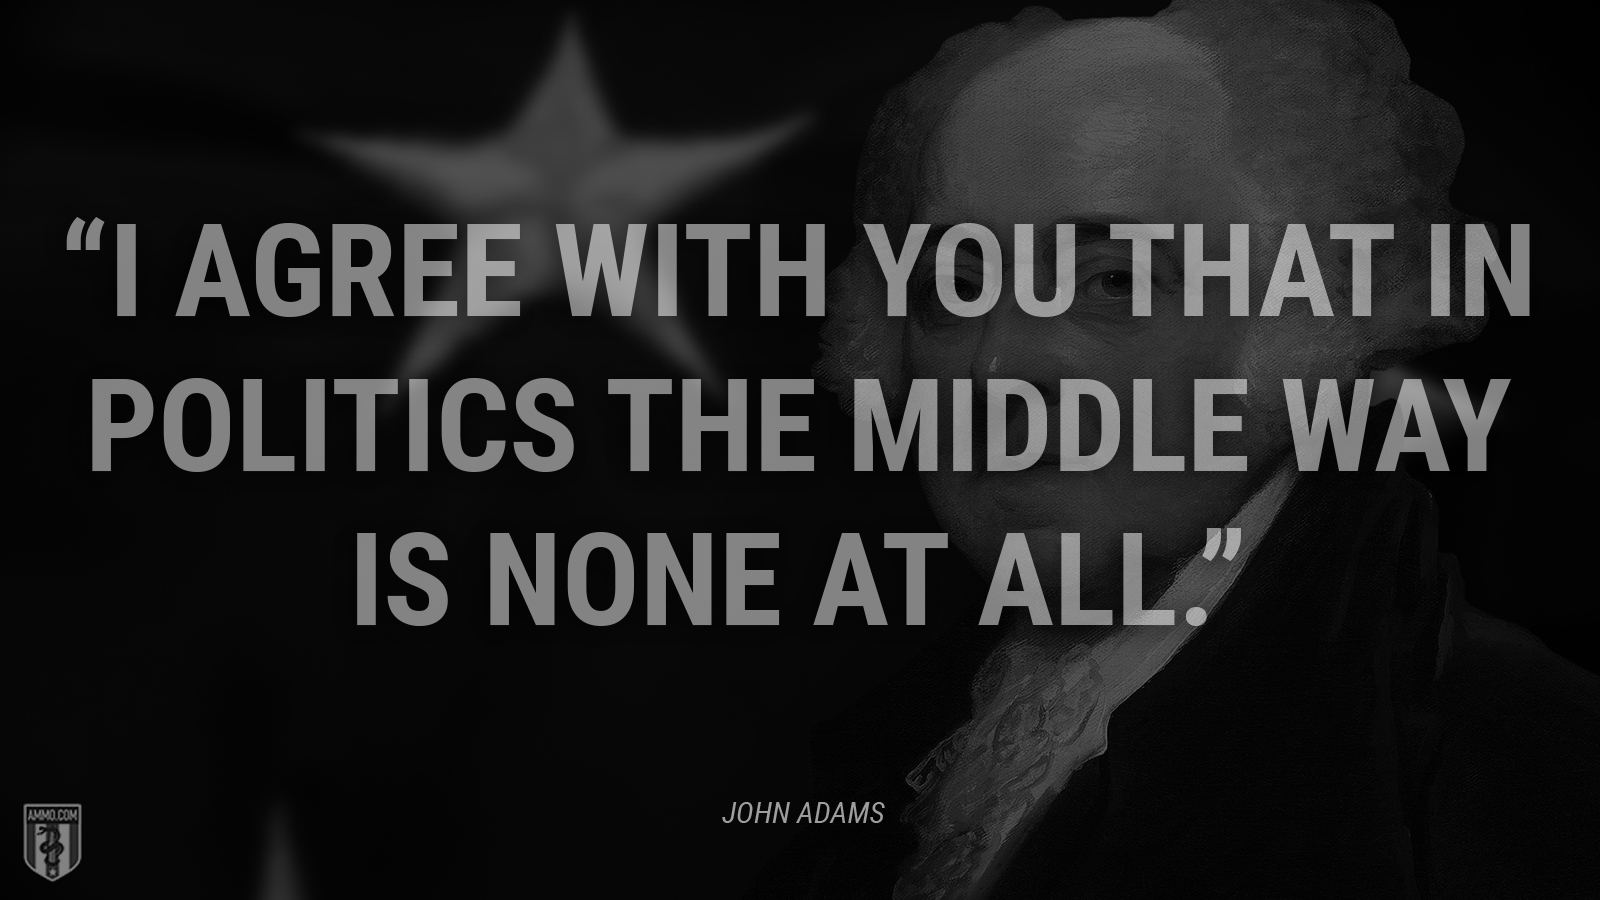 """I agree with you that in politics the middle way is none at all."" - John Adams"